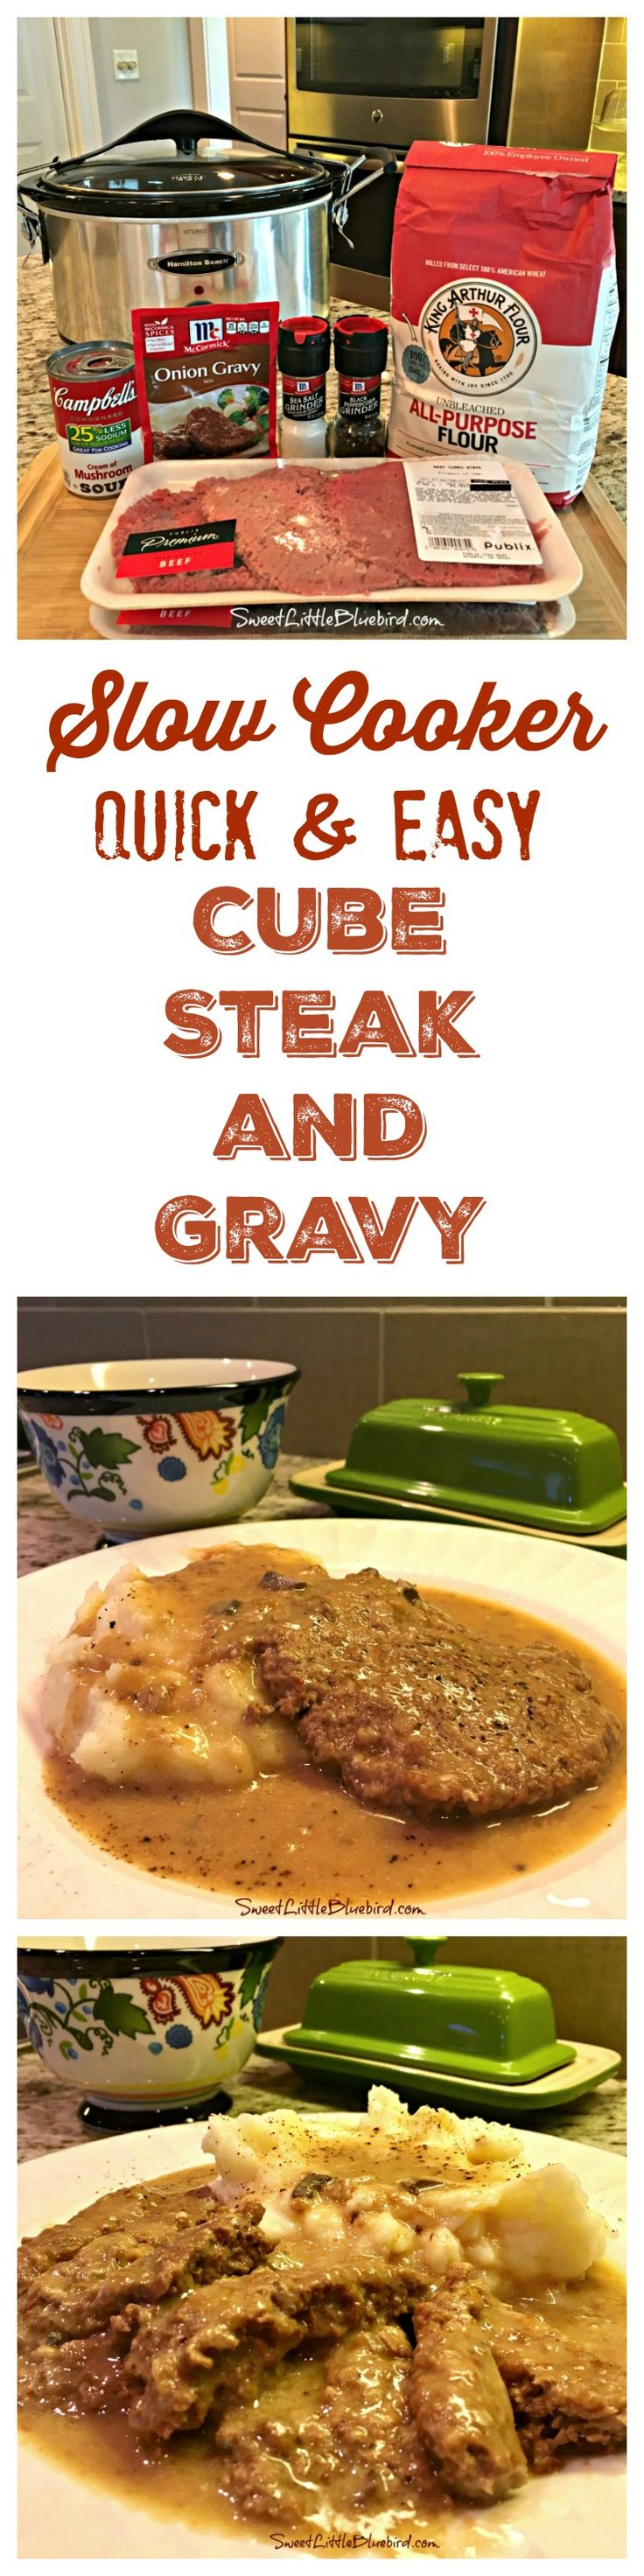 SLOW COOKER CUBE STEAK AND GRAVY (QUICK & EASY) -  Down home comfort food, perfect for a busy day! Easy to adapt to your taste, a meal the whole family will love!